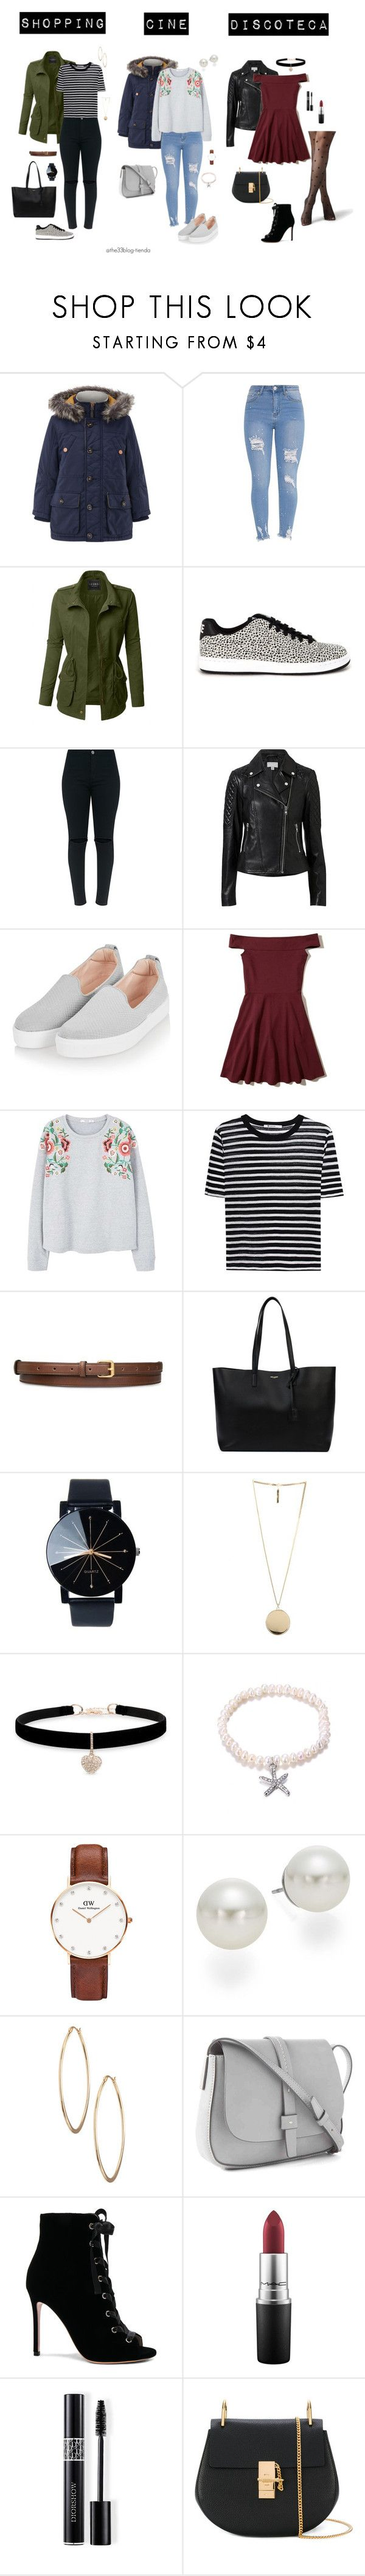 """""""Qué planes para hoy?"""" by jeniffercrystel on Polyvore featuring moda, Monsoon, LE3NO, NIKE, Witchery, Topshop, Hollister Co., MANGO, T By Alexander Wang y STELLA McCARTNEY"""